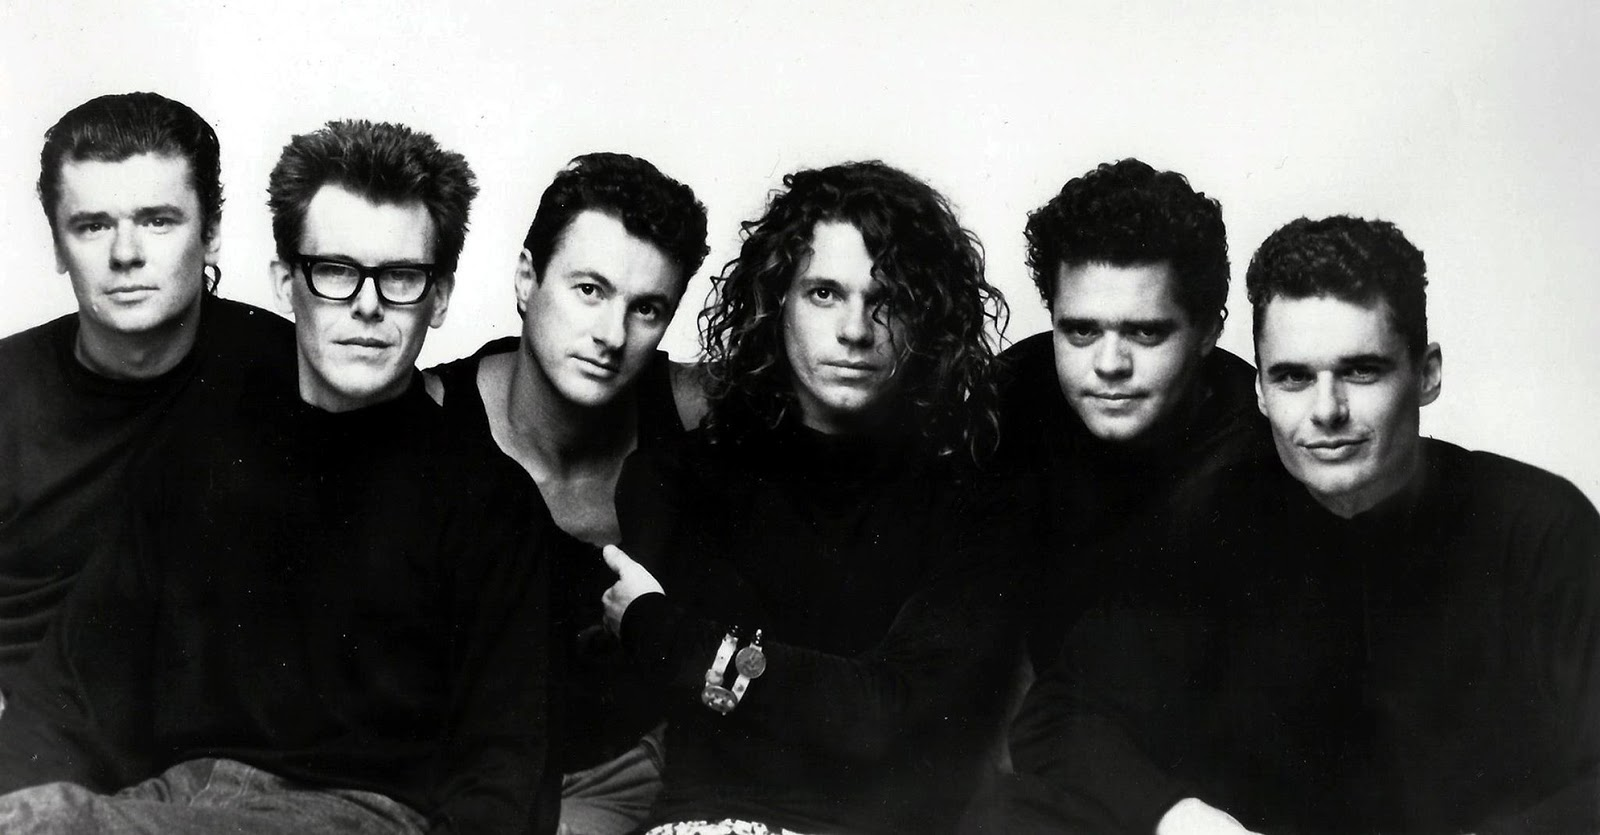 Strange tales michael hutchence after 20 years he arrived in sydney on tuesday 18th november checking into the ritz carlton in double bay and met his bandmates for rehearsals on the thursday and friday nvjuhfo Gallery